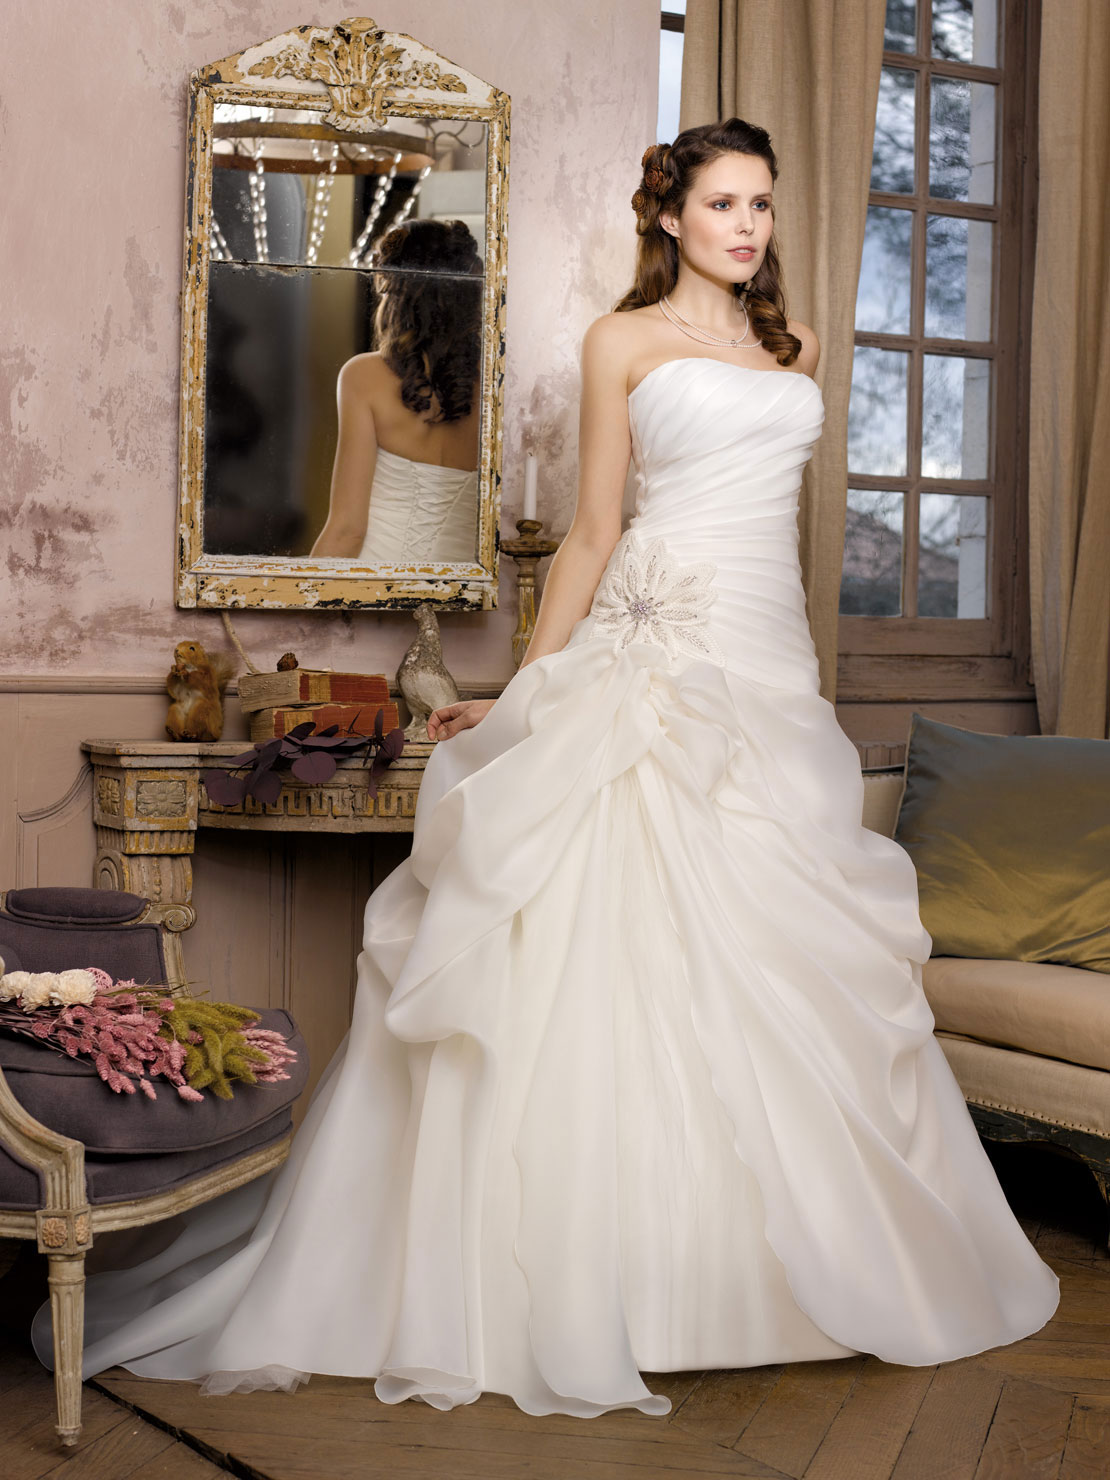 The Lucky Bridal Is A Hong Kong Buying Wedding Dresses Shop Easily It Specialized In Quality And All Of Superlative Full Customer Services